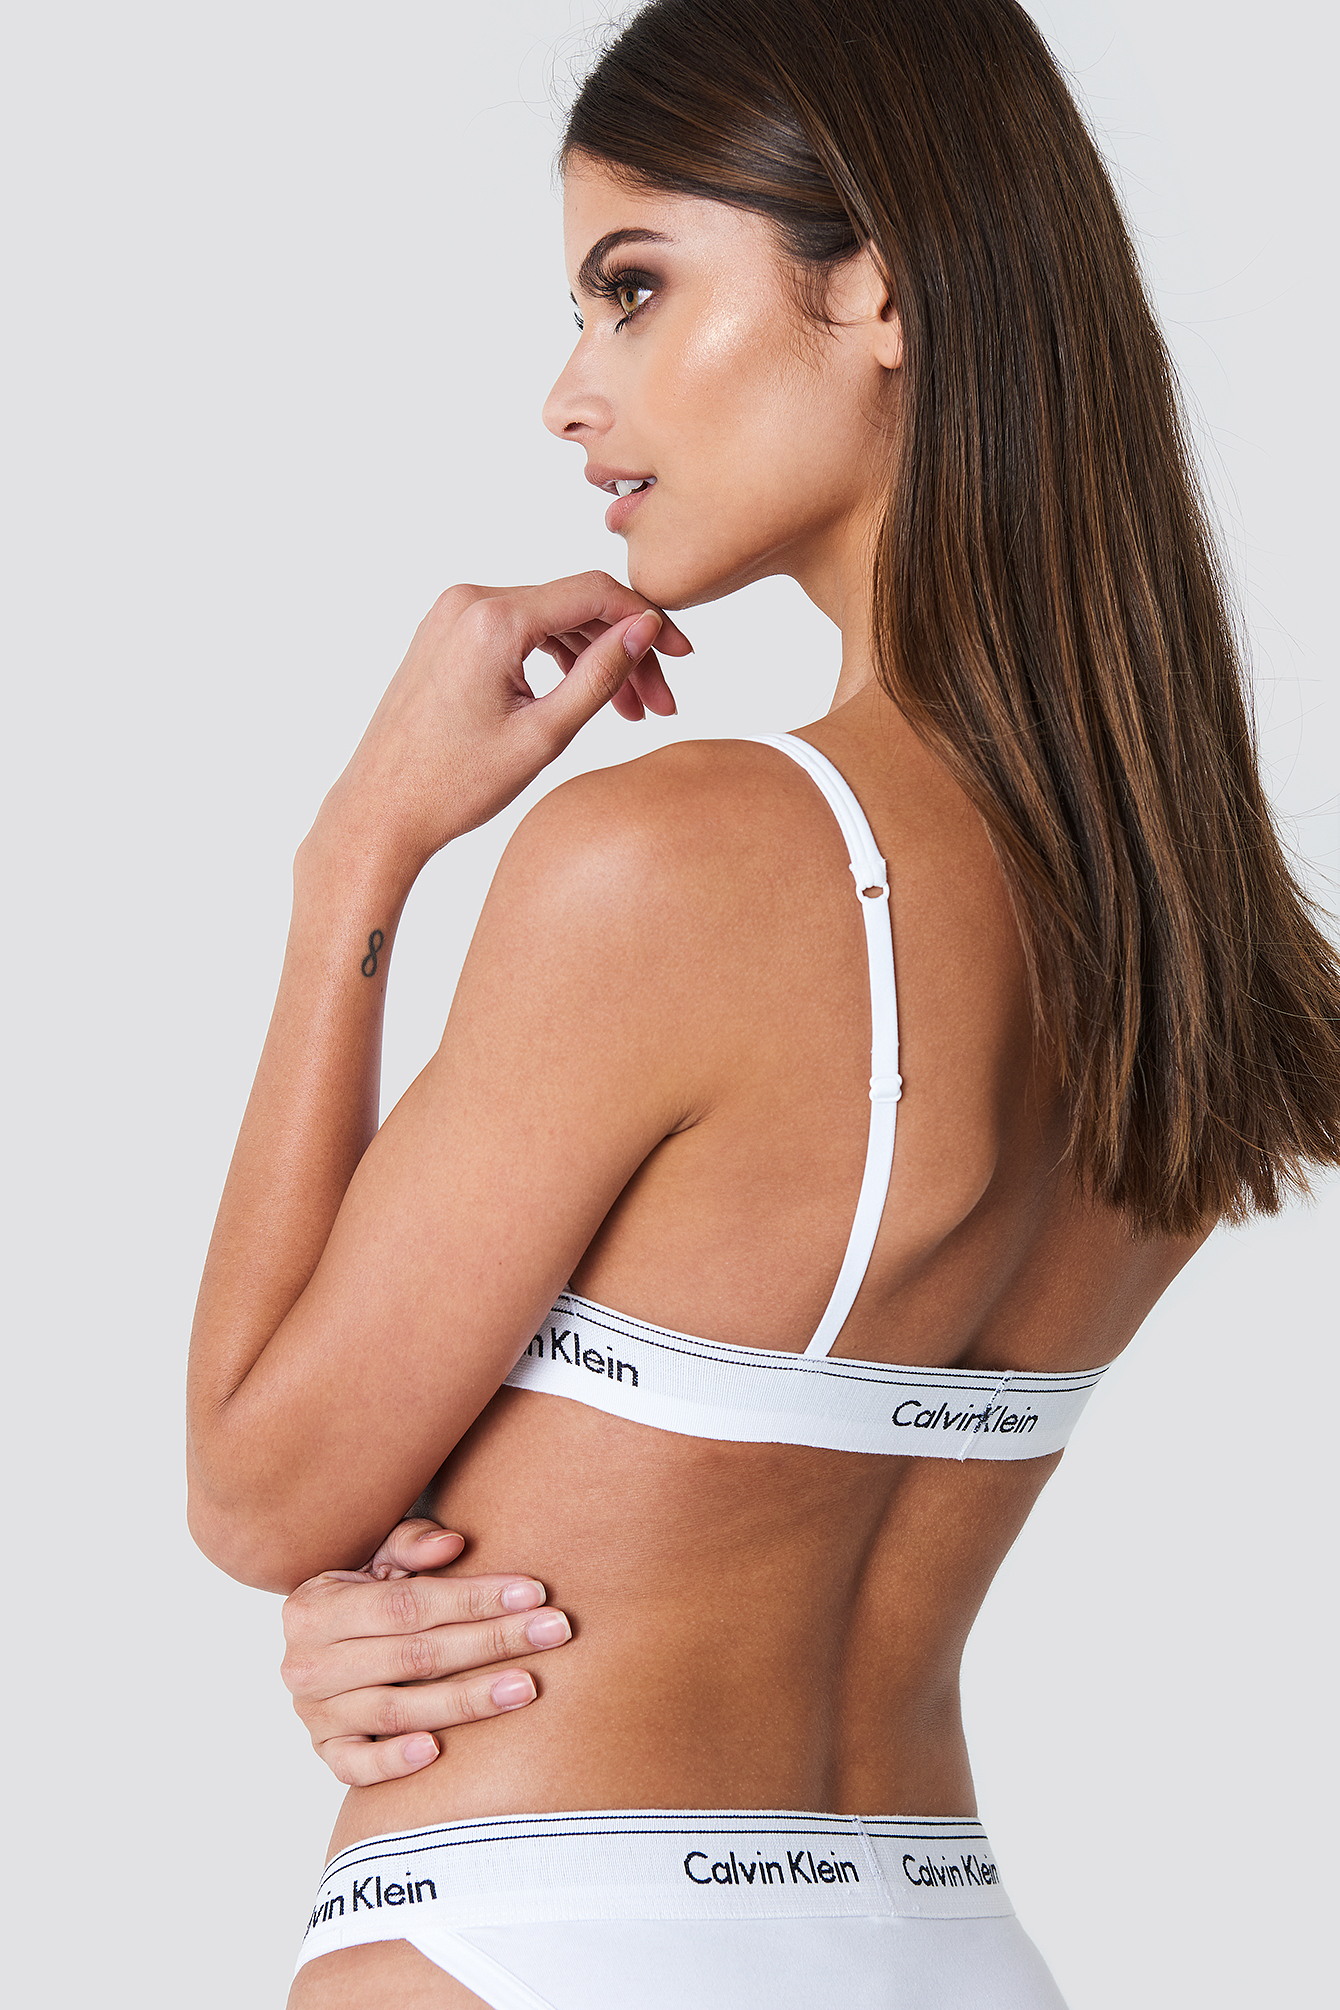 Calvin Klein Unlined Triangle Bra - White